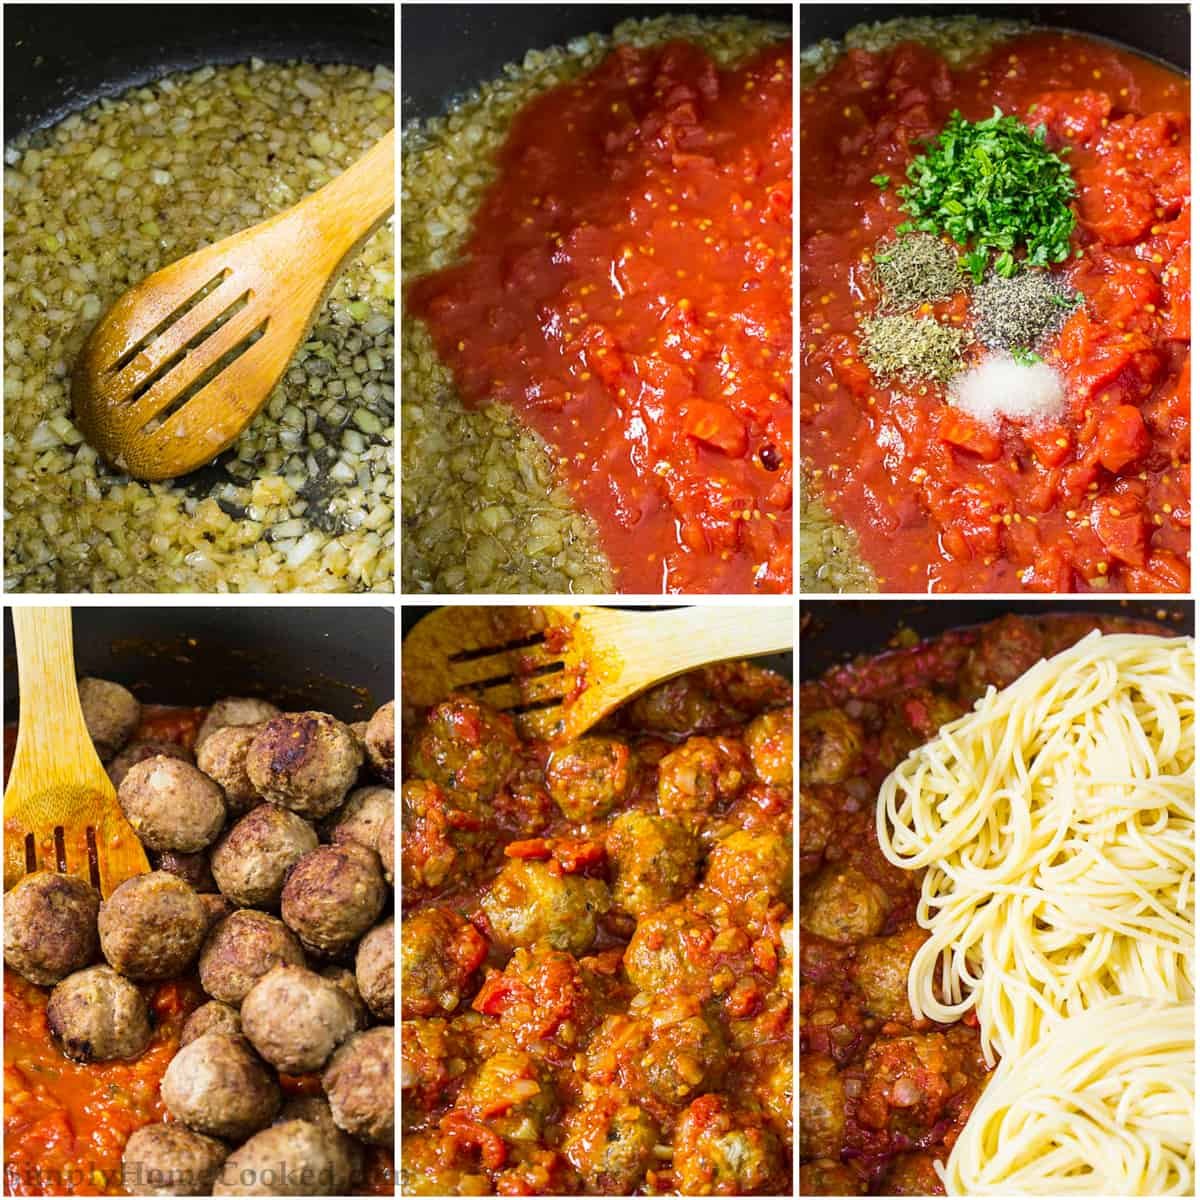 Best Meatballs And Homemade Spaghetti Sauce Simply Home Cooked